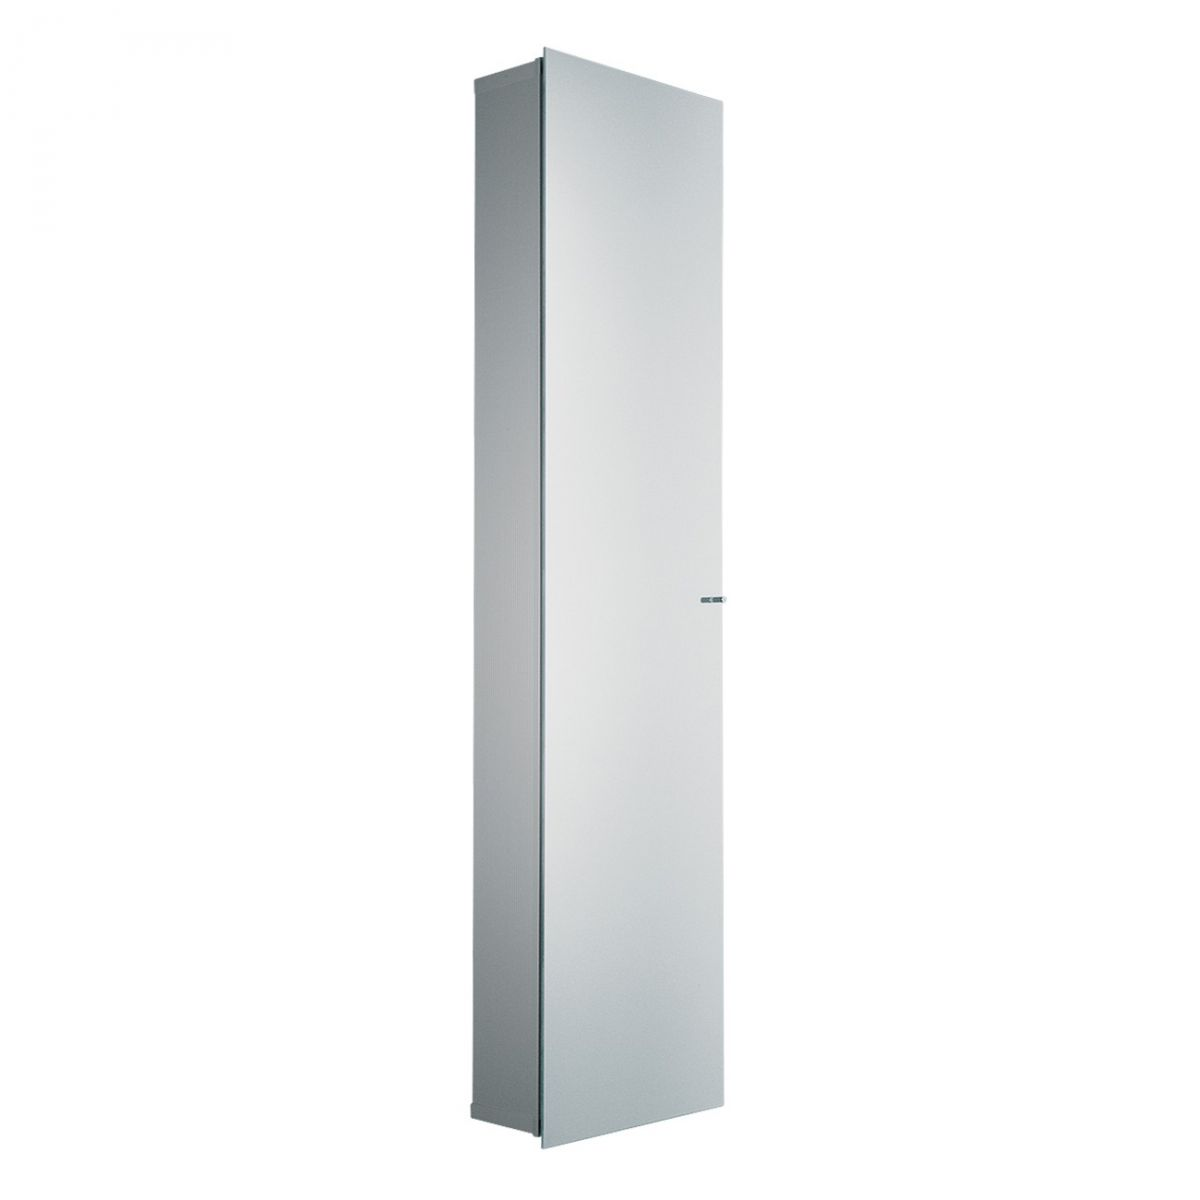 tall mirror bathroom cabinet keuco royal 30 mirror cabinet uk bathrooms 20763